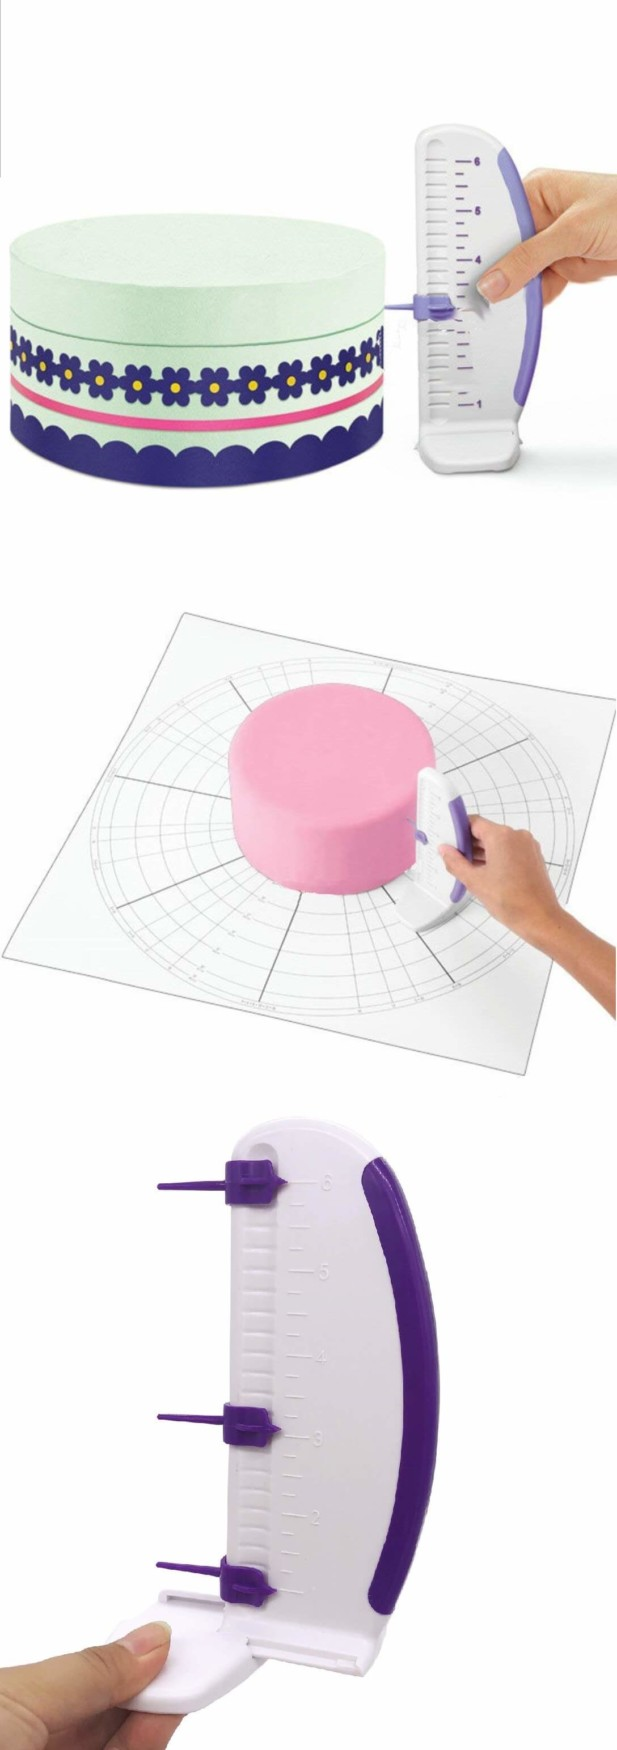 Cake rulers and scrapers | Best Cake Decorating Tools, Equipment and Supplies for Pro Decorators